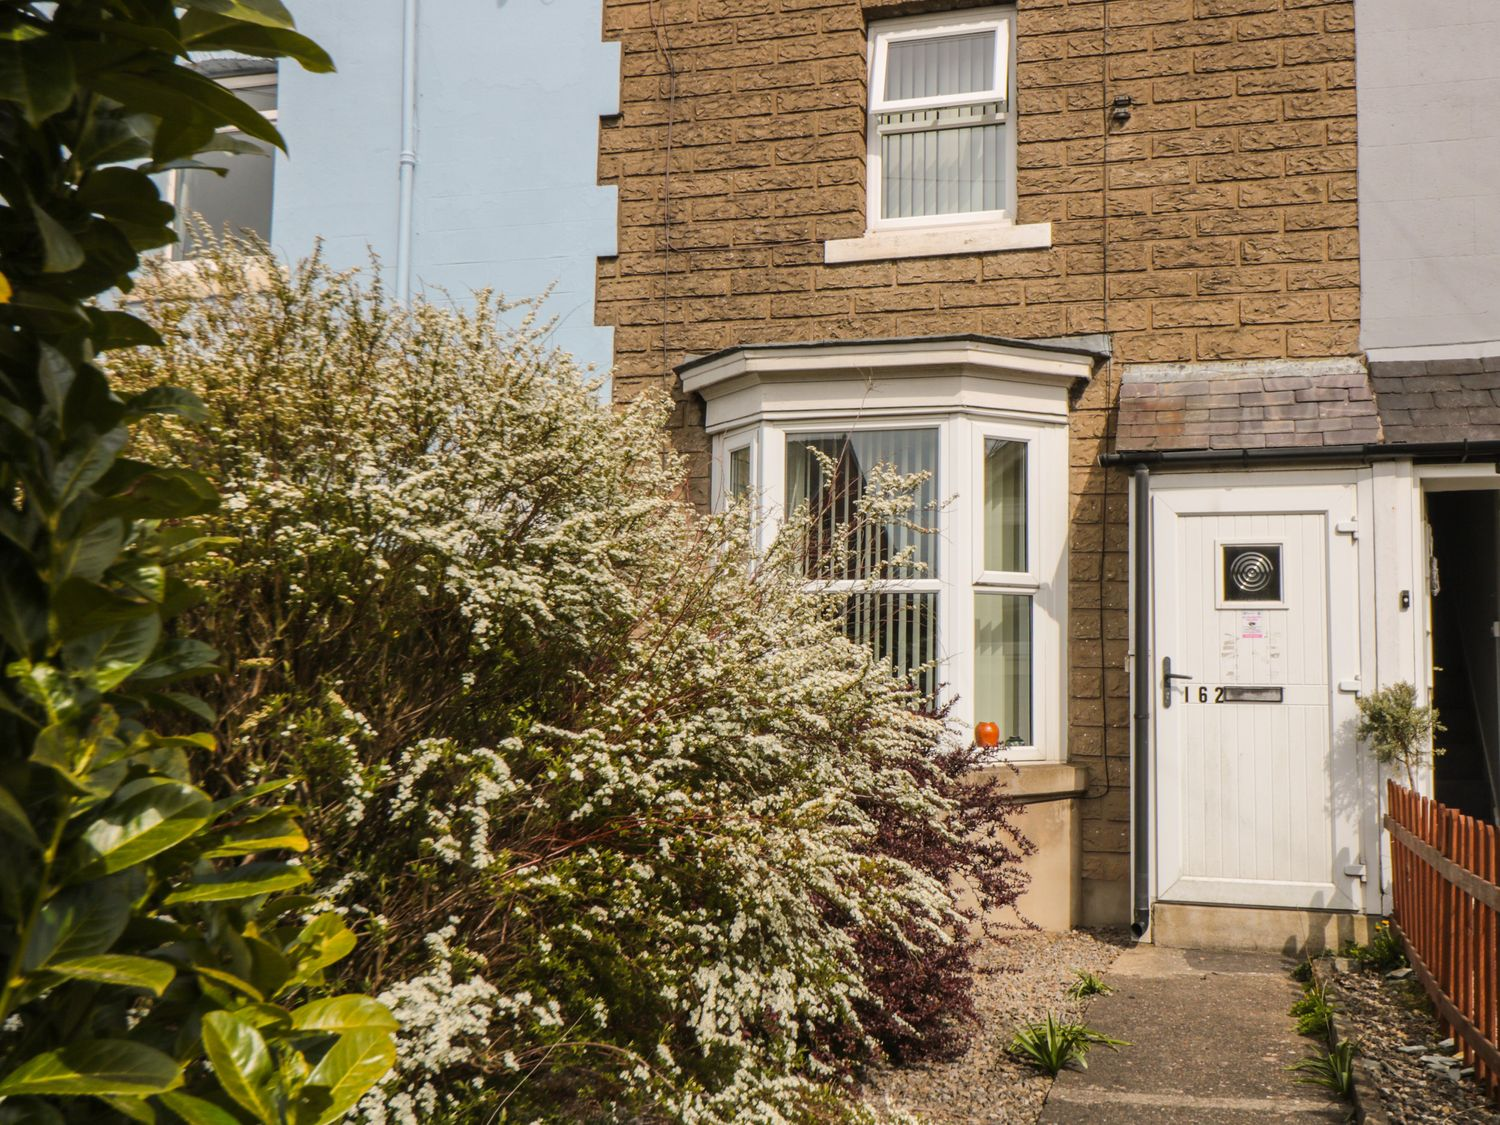 162 Filey Road - Whitby & North Yorkshire - 1066815 - photo 1